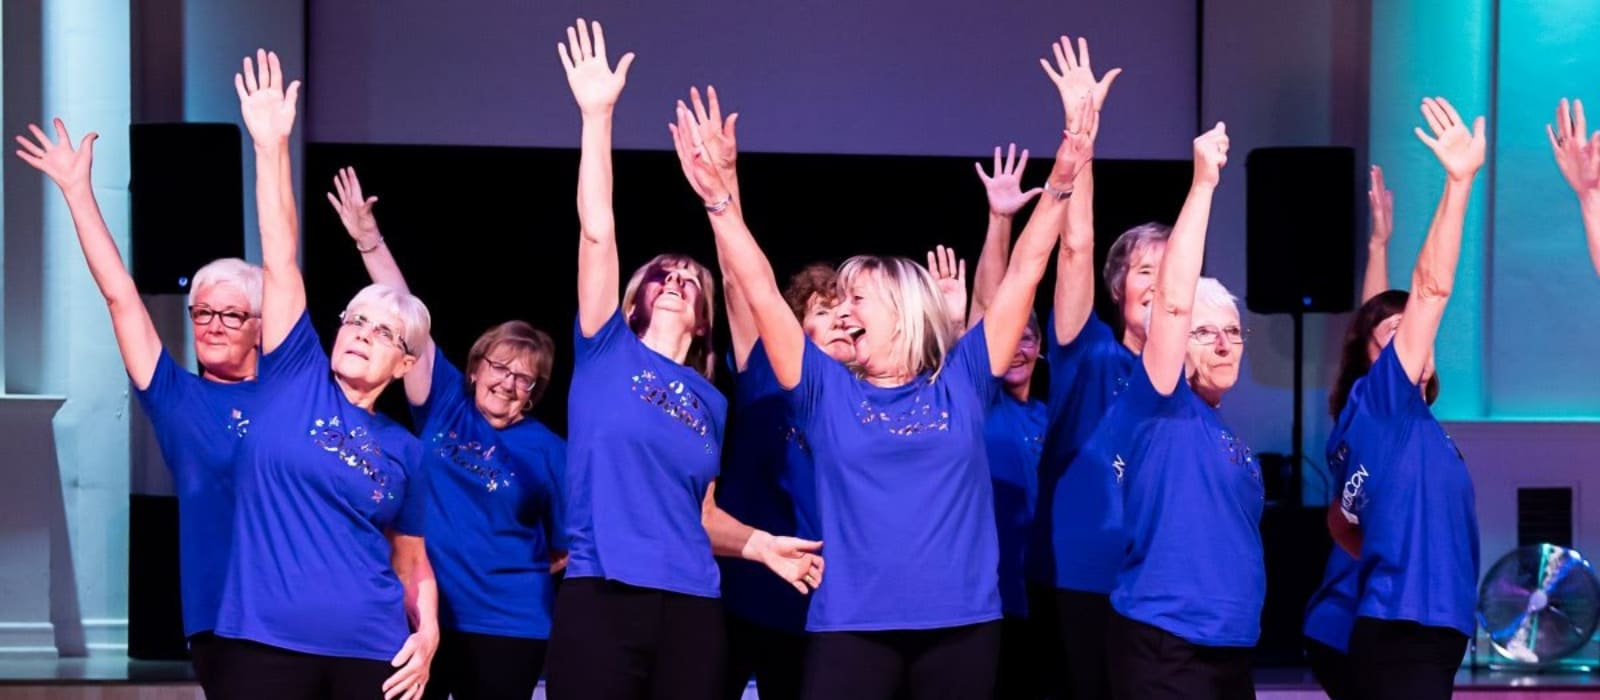 NuWave dancers wearing matching blue t-shirts, grouped together and smiling with arms raised at the end of a performance.